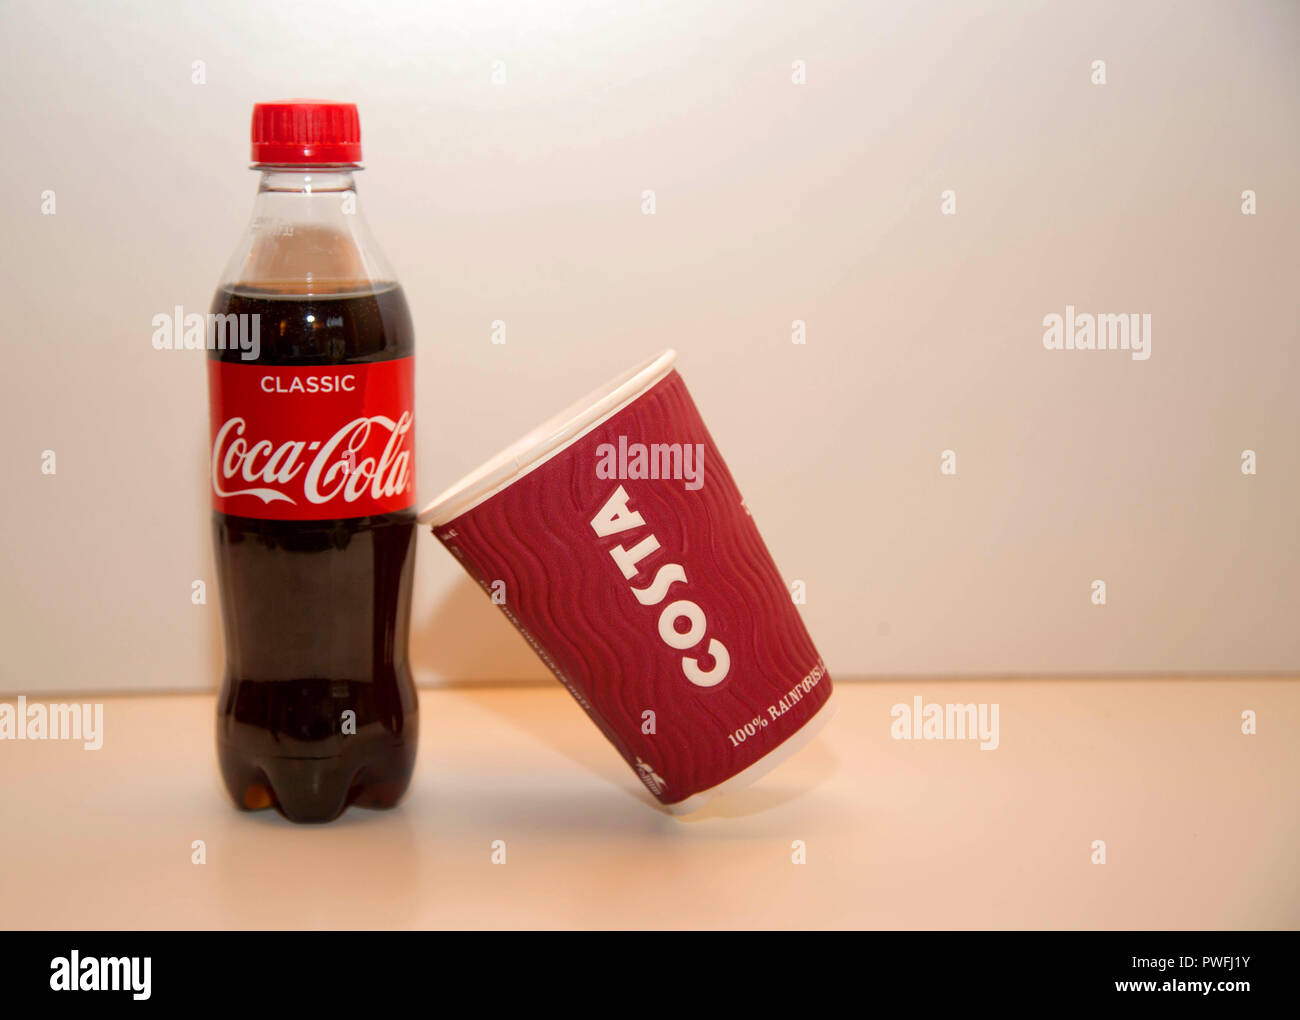 Coca-cola and Costa cup on plain background - Stock Image